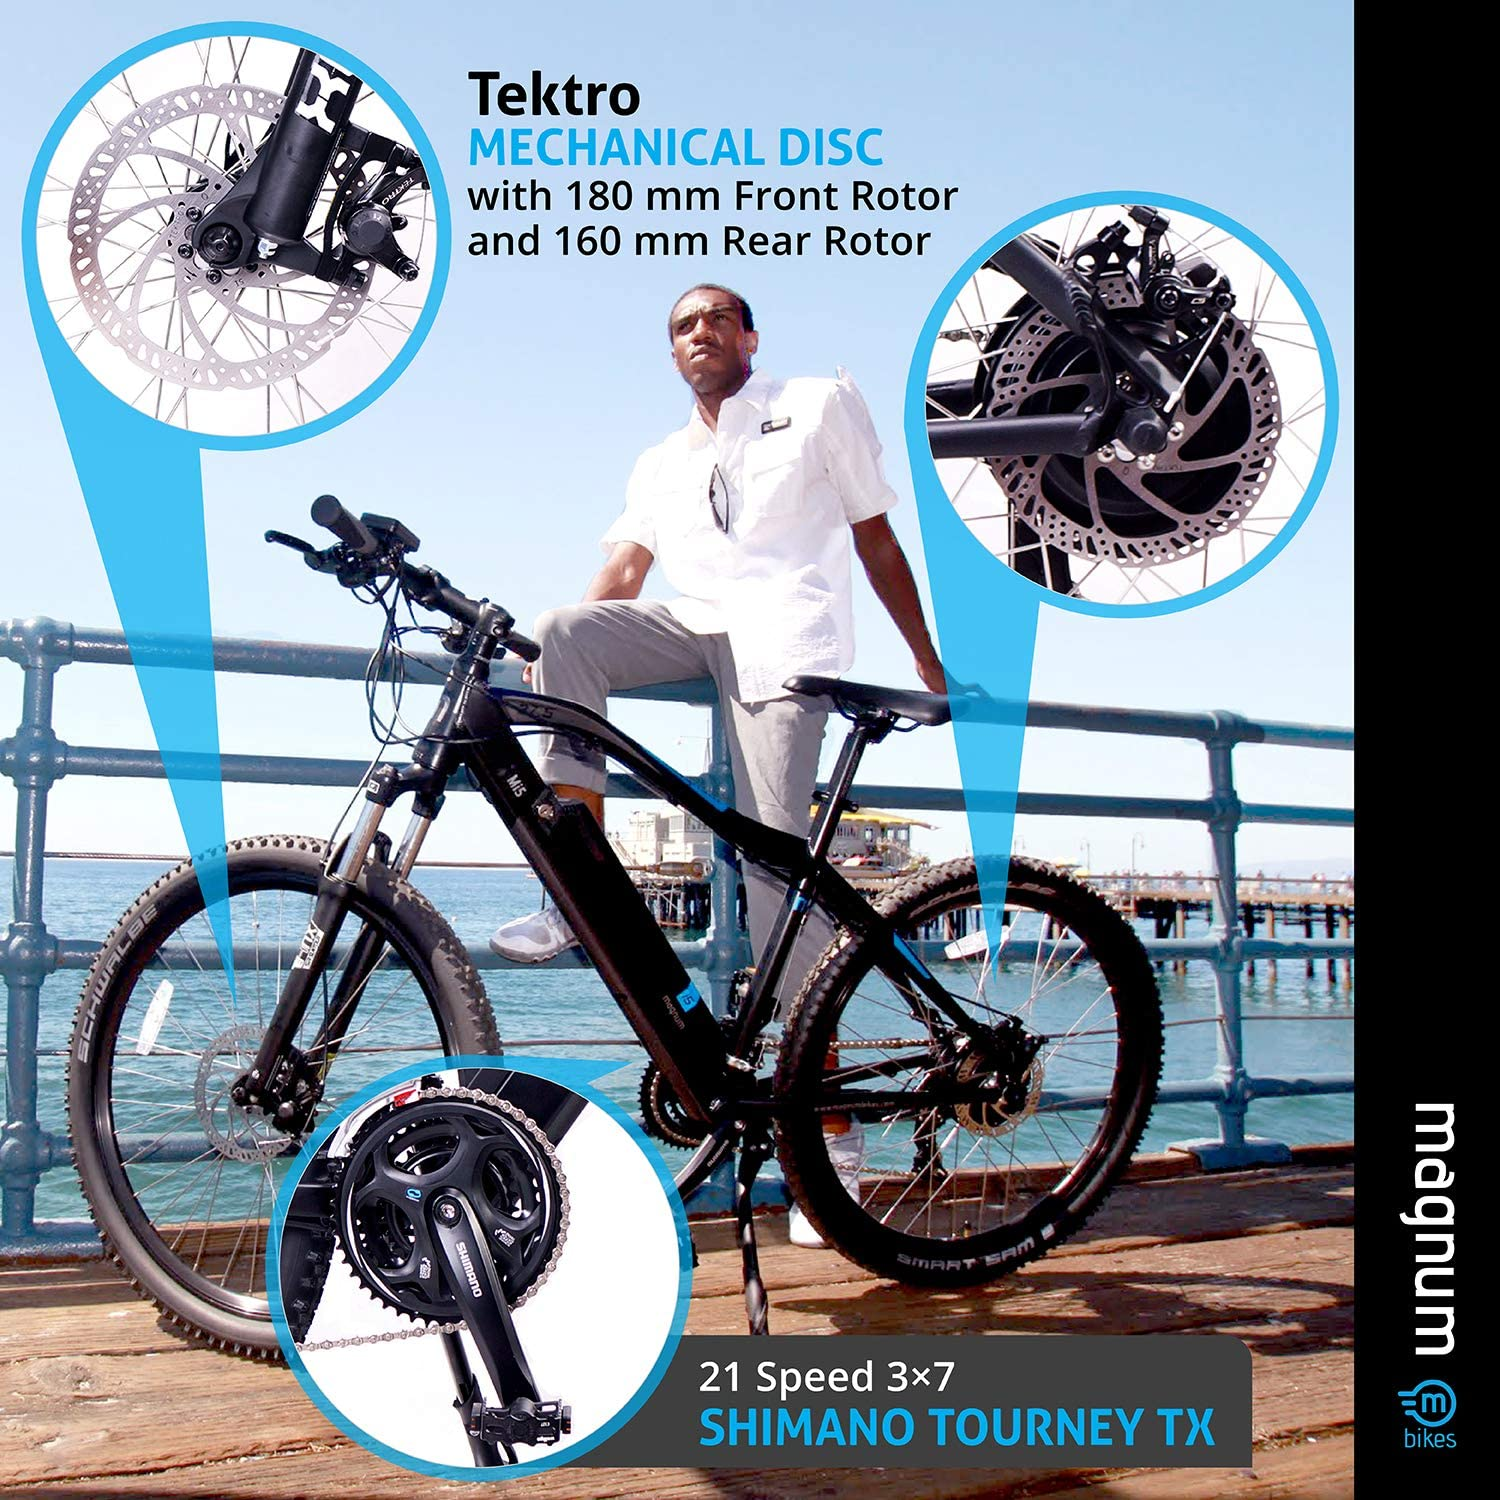 Rear Rack Magnum Mi5 Premium Electric Trail Bike 350W Motor Black with Blue Accents Large Capacity 36V13A Lithium Battery Trail Ready